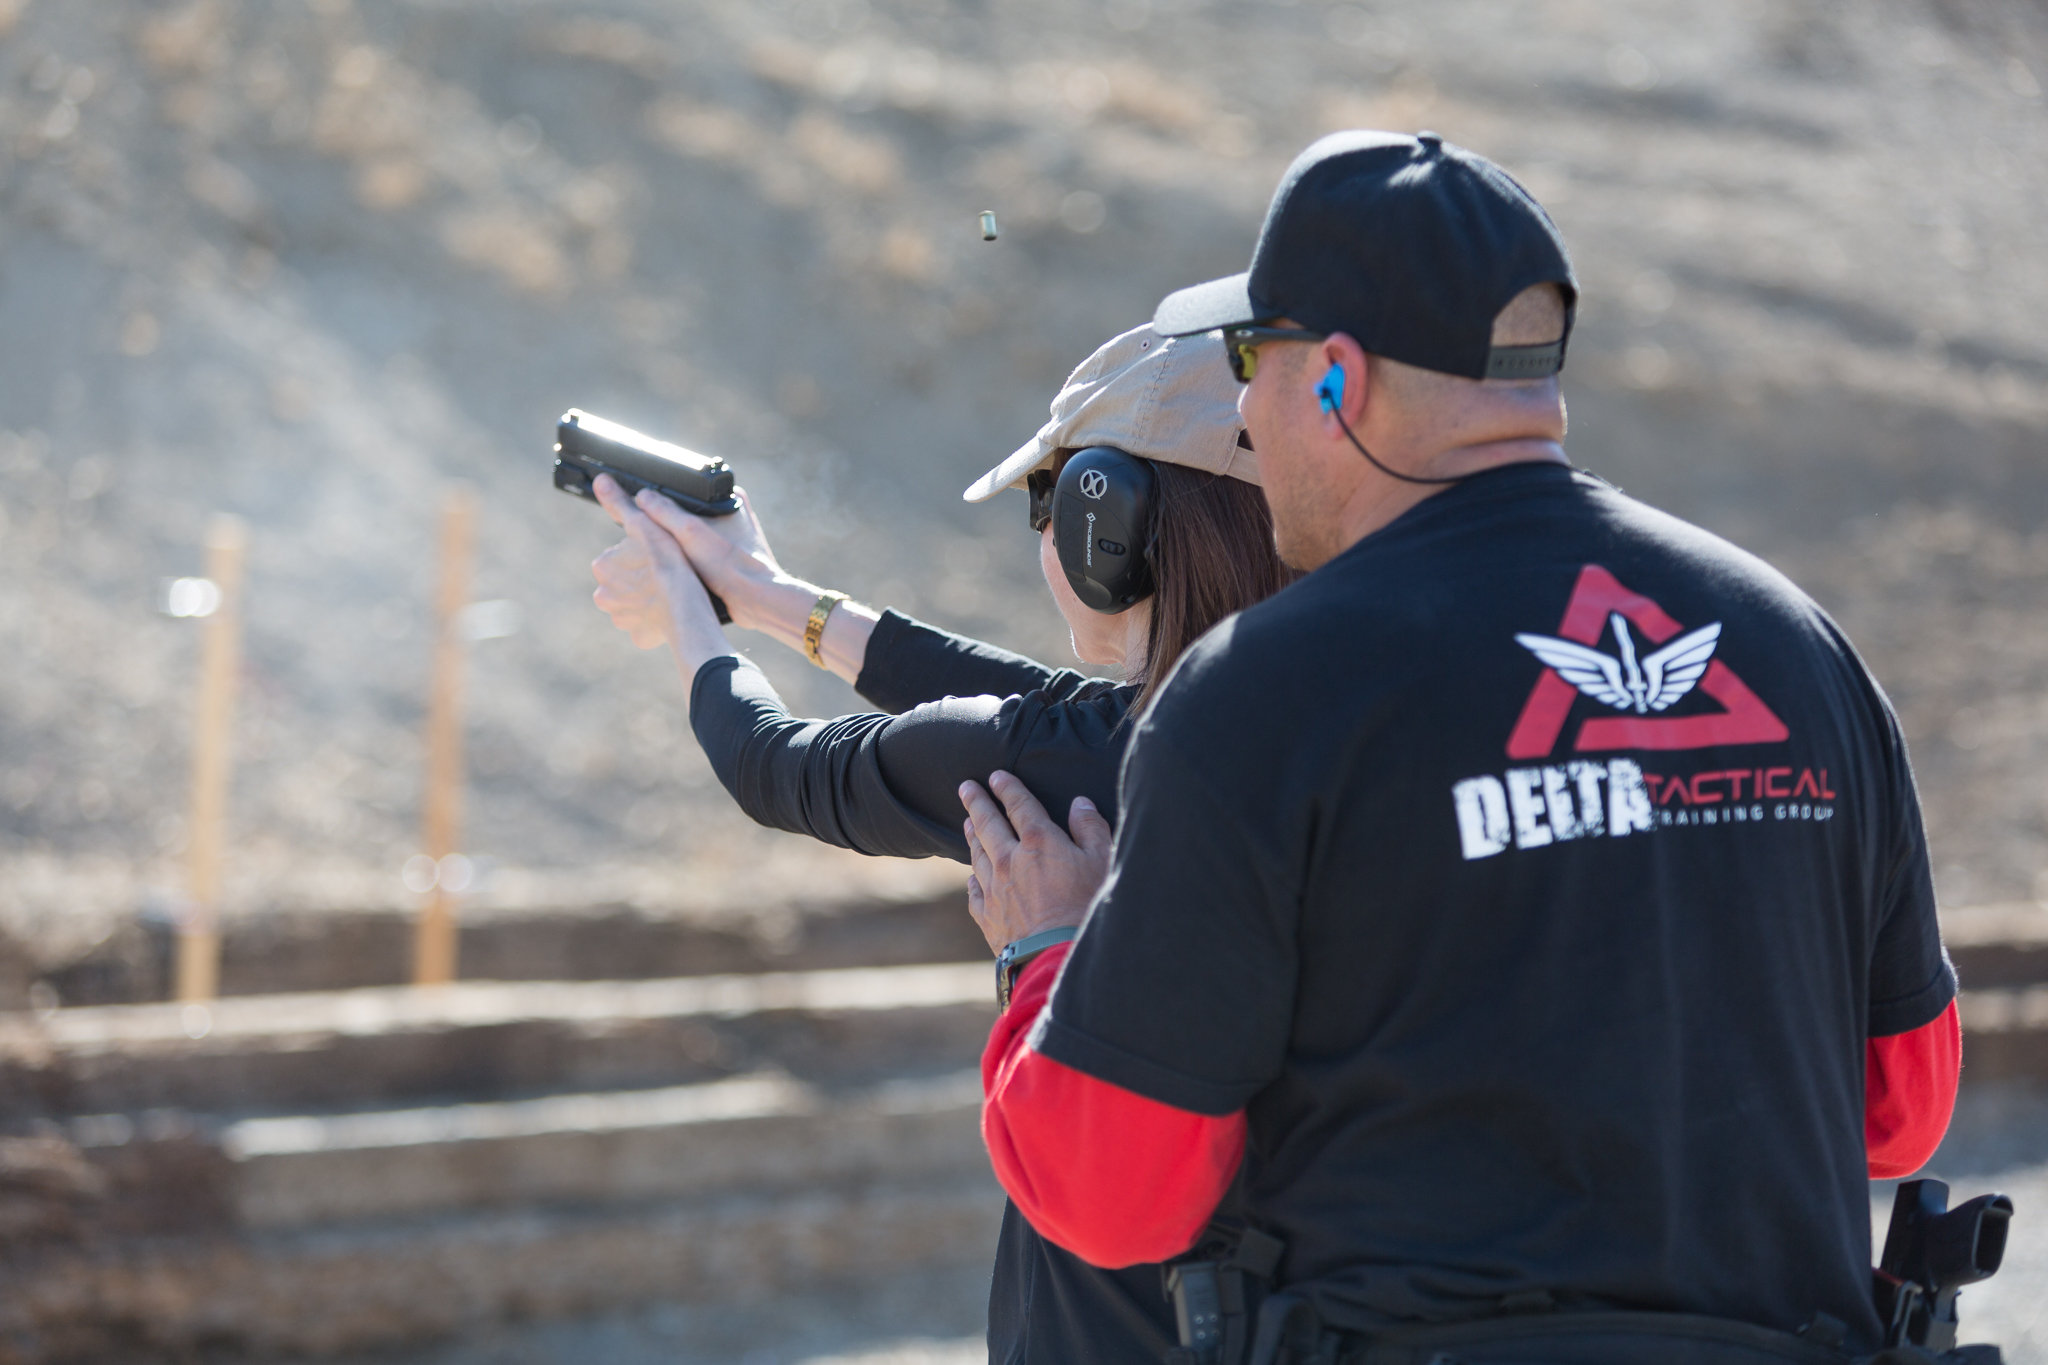 Delta Tactical Training Group, LLC